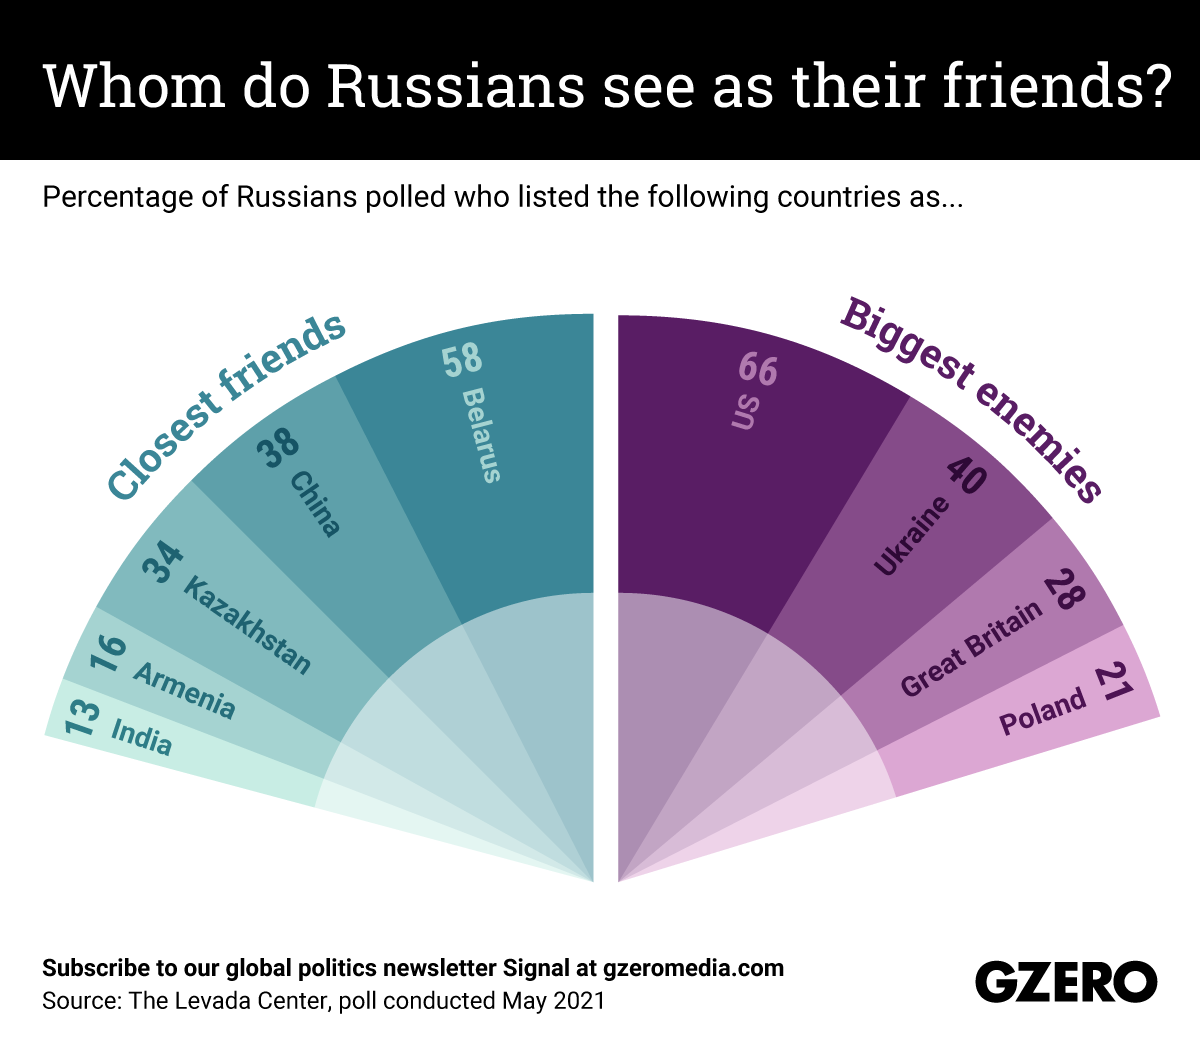 The Graphic Truth: Whom do Russians see as their friends?